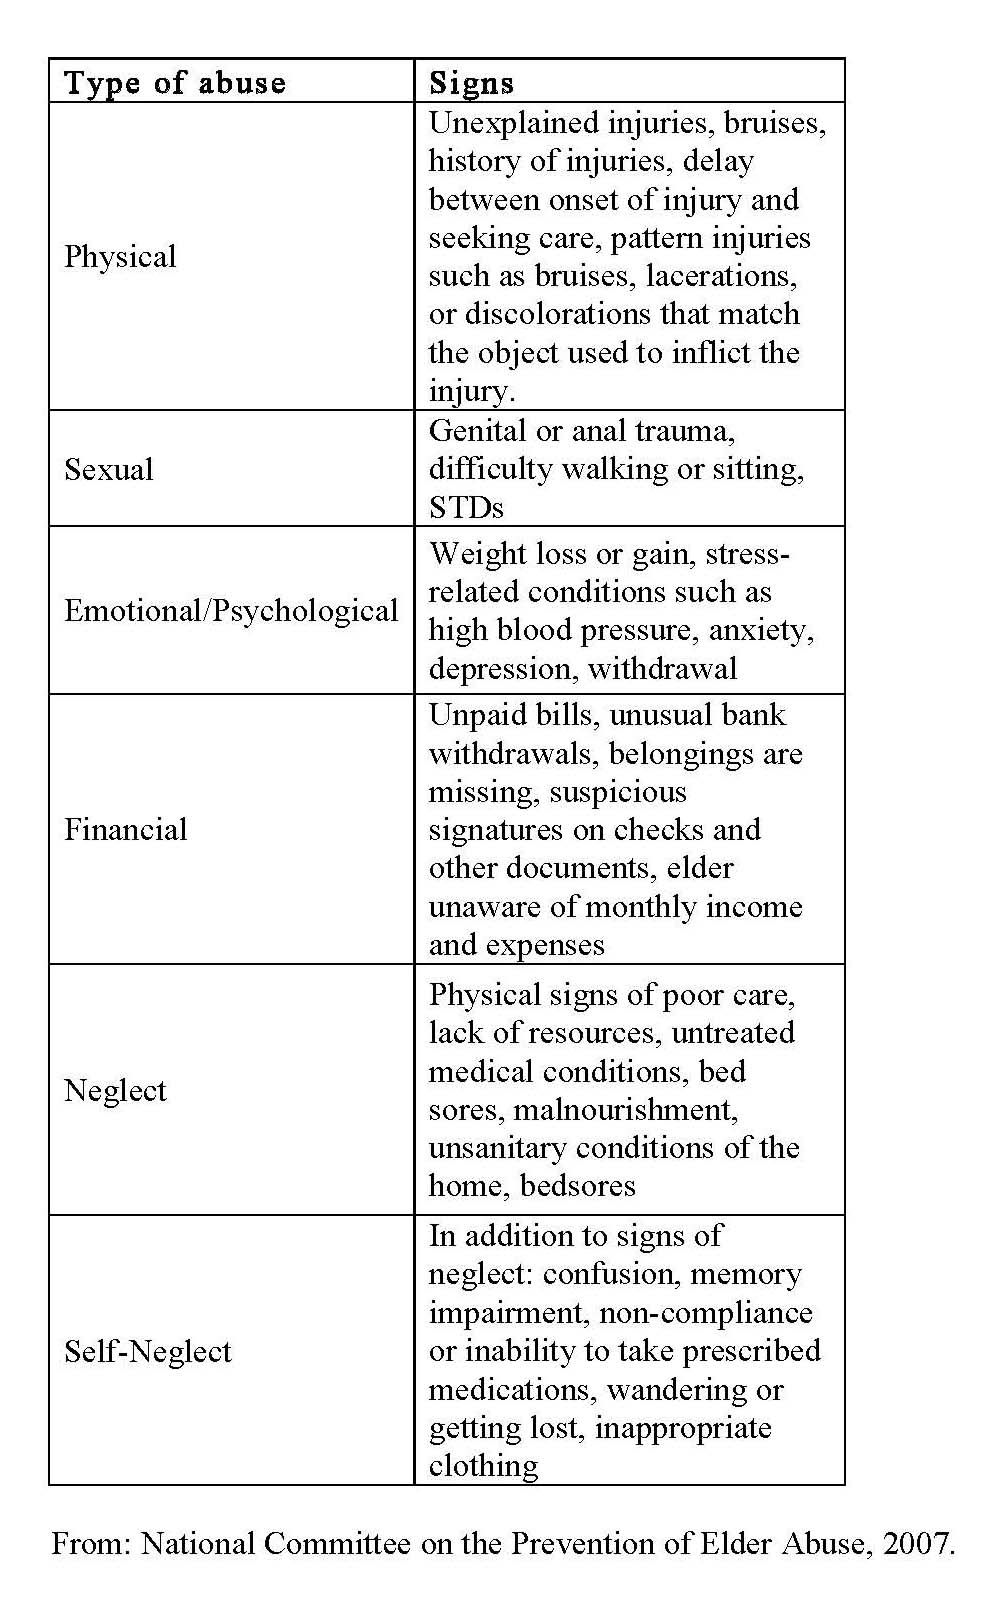 types of elder abuse and signs americannursetoday com  types of elder abuse and signs americannursetoday com